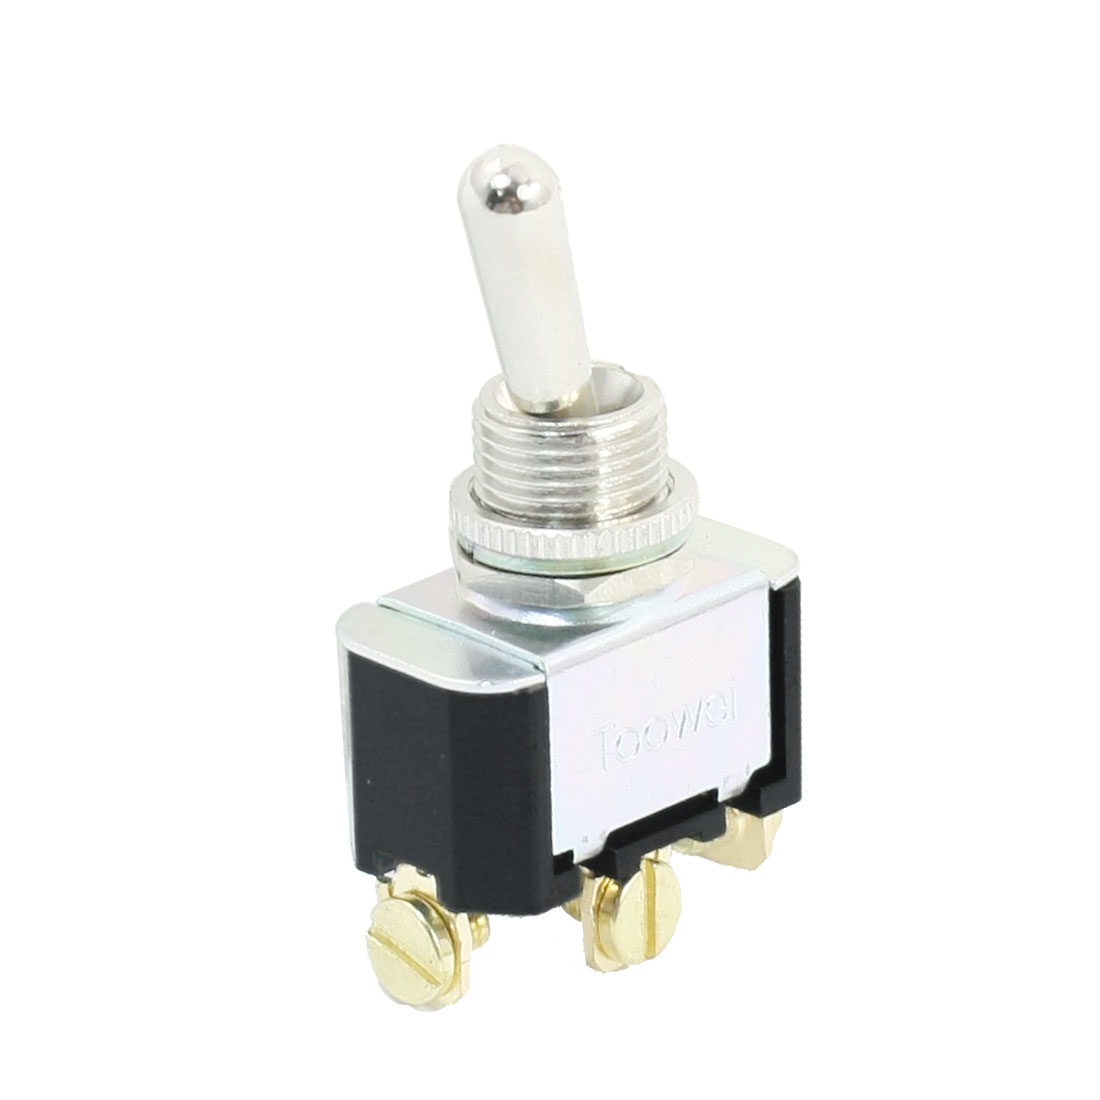 Repairing AC 250V 10A SPDT ON-ON 2 Position Latching Toggle Switch T6012W